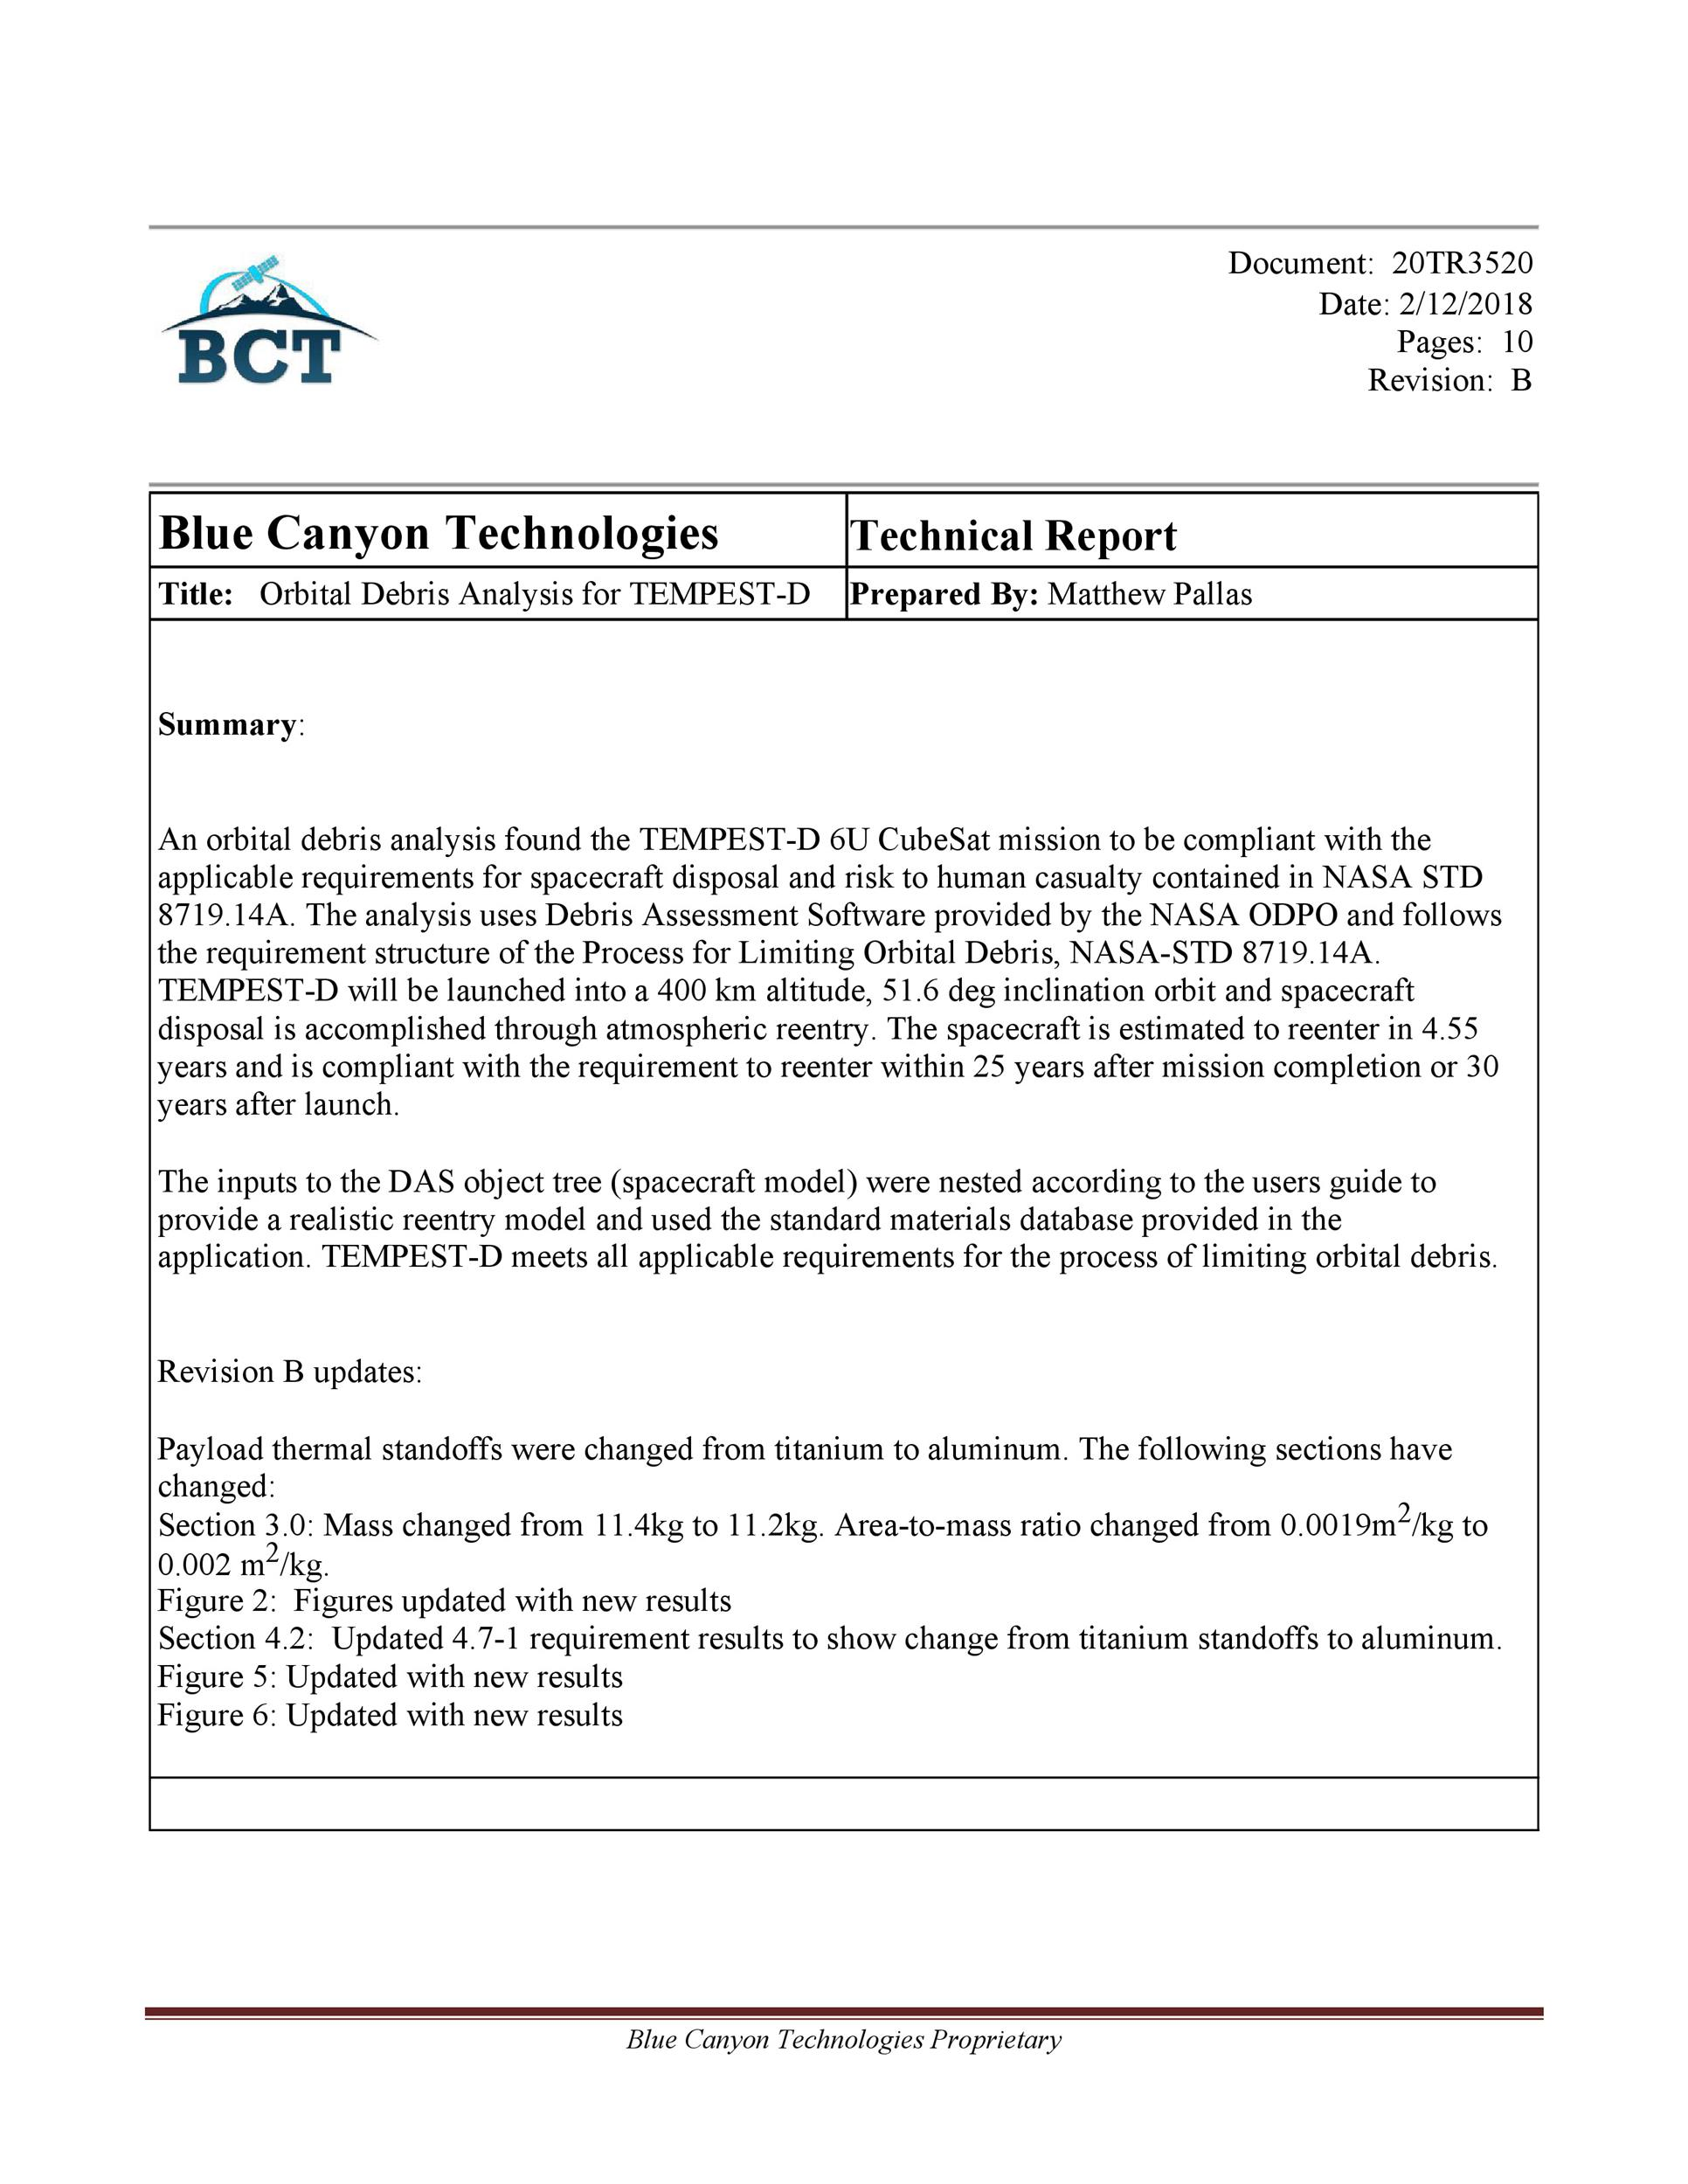 Free technical report template 43